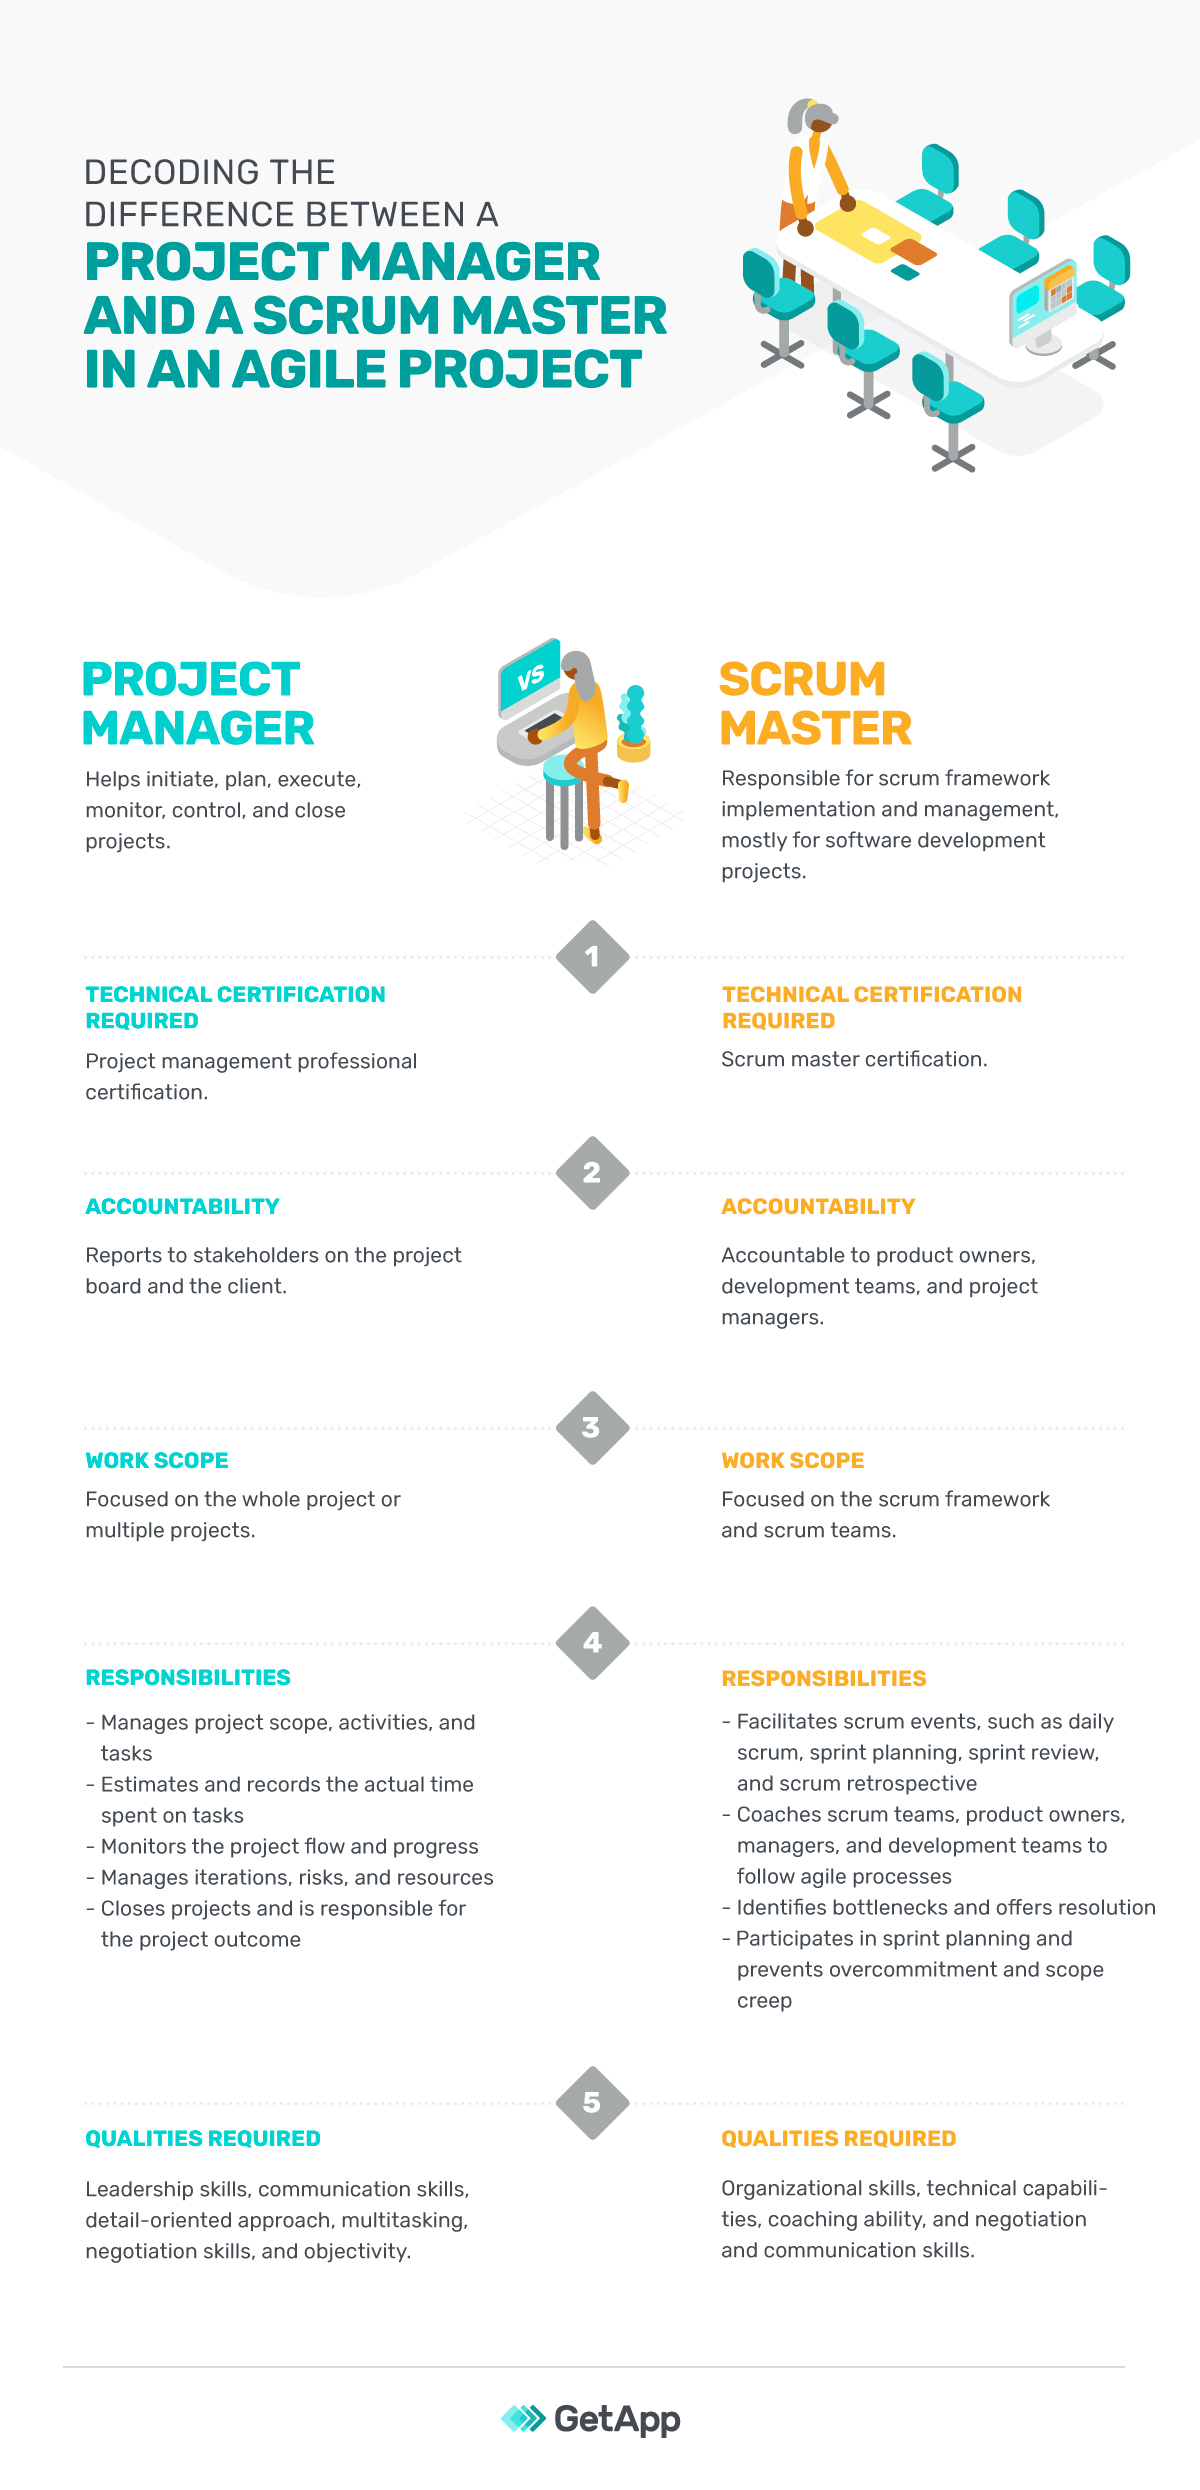 Difference-Between-It-Project-Manager-and-Scrum-Master DLVR (1)